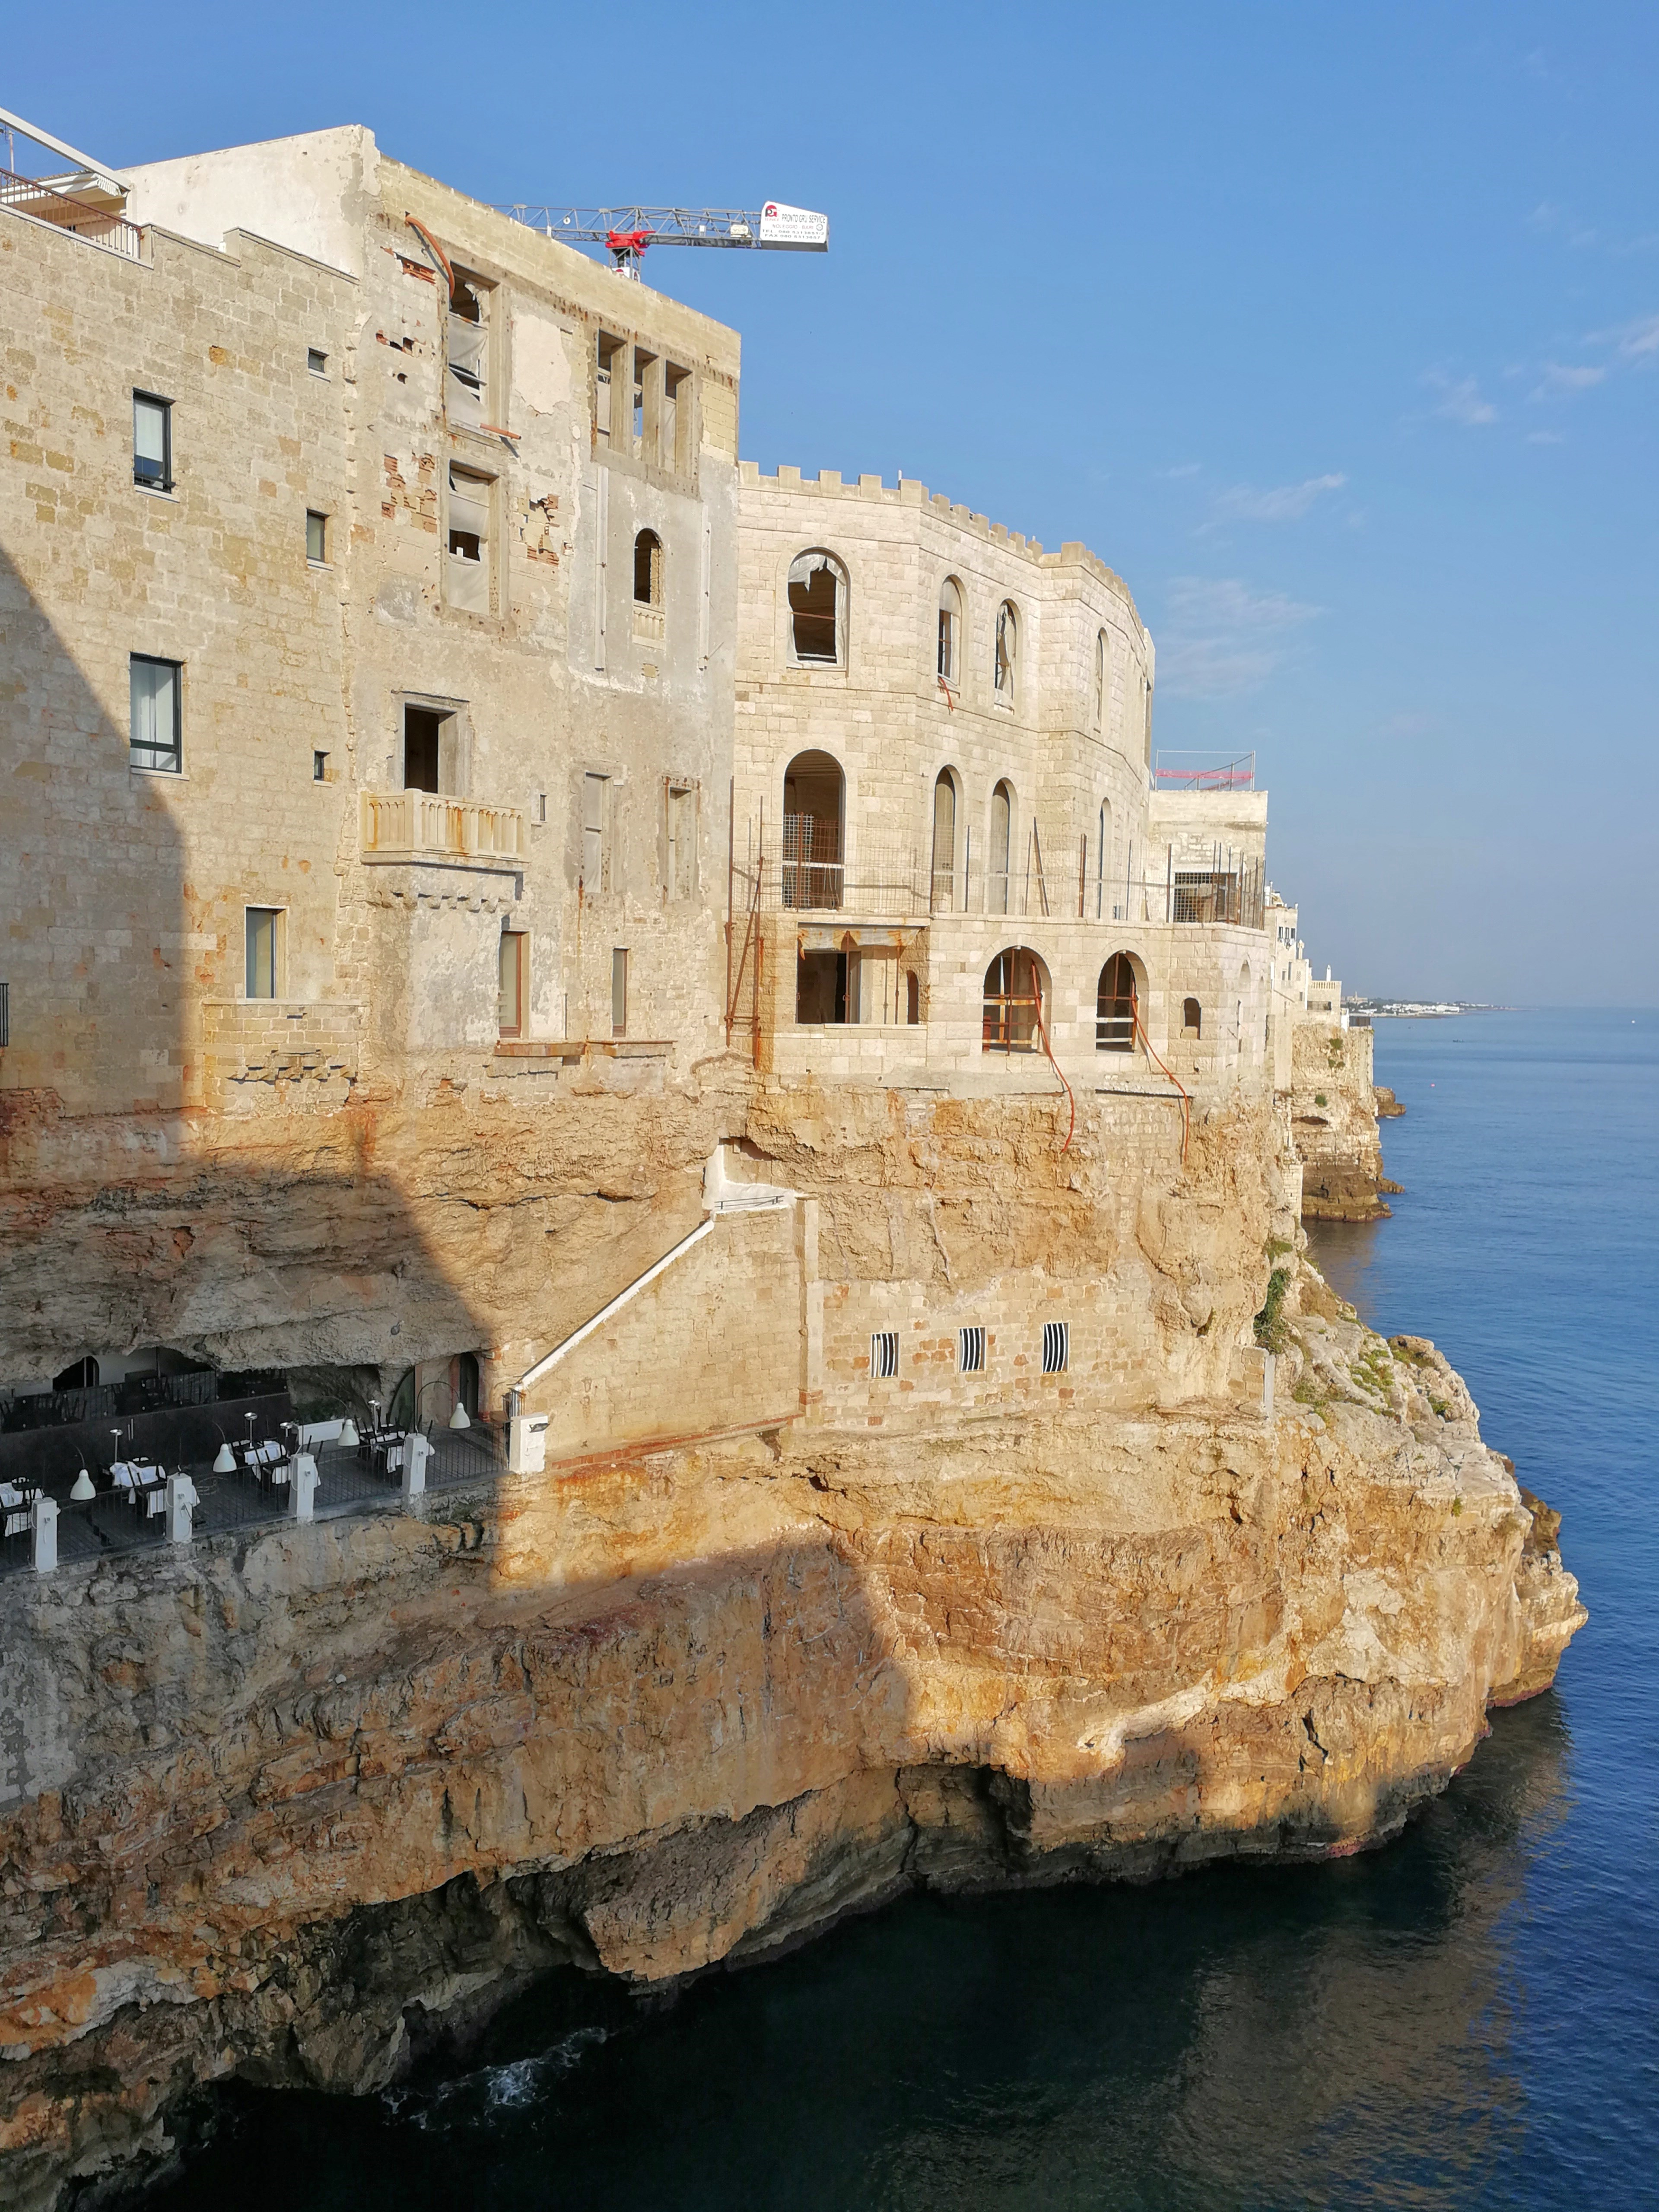 grotta palazzese | grotta palazzese hotel restaurant | italy | romance | romantic destinations | travel | vacation | destinations